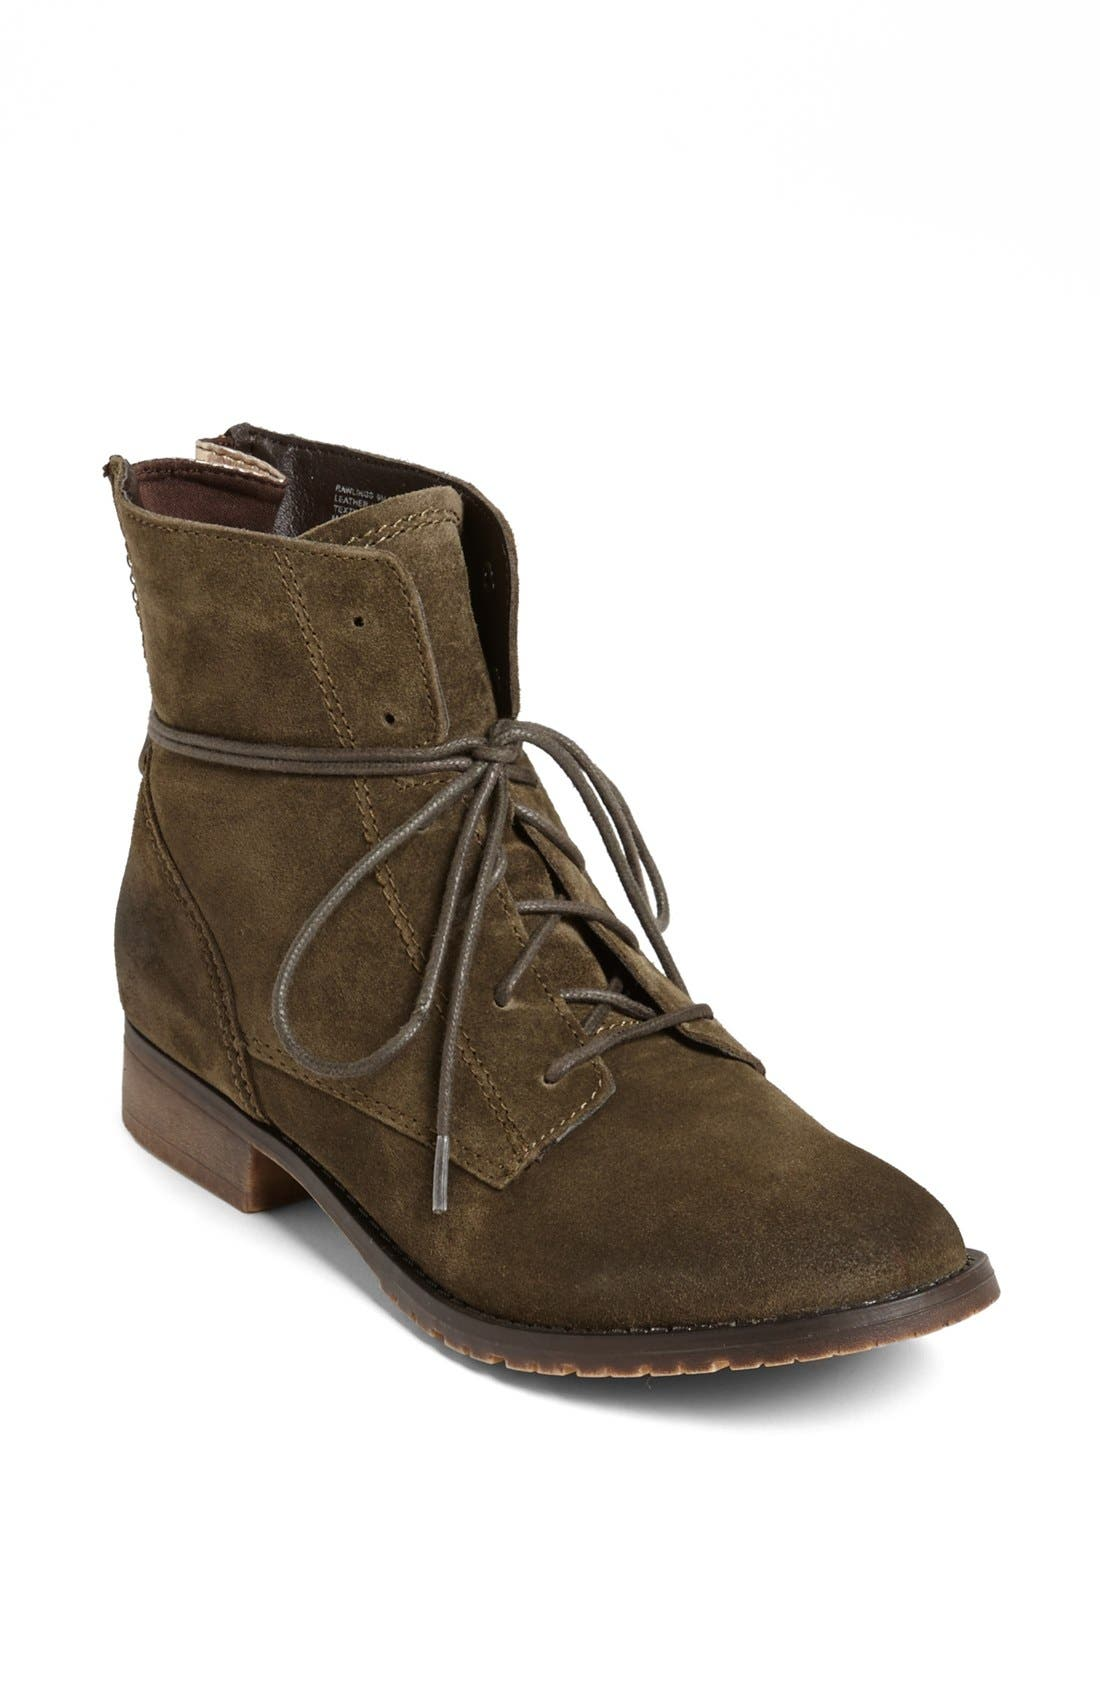 Main Image - Steve Madden 'Rawlings' Bootie (Online Exclusive Color)